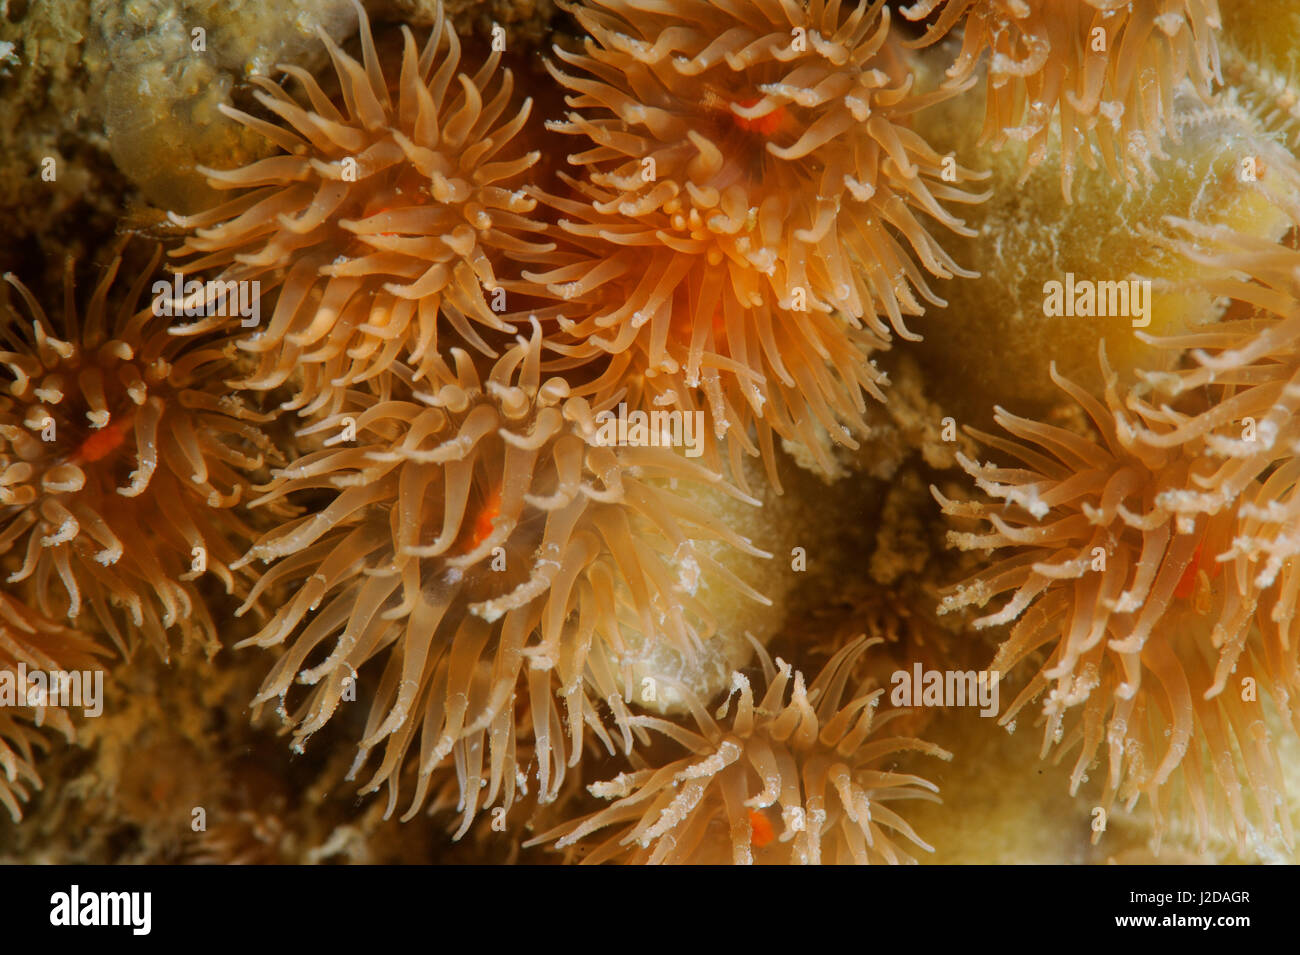 Brick anemones are small orange anemones that are usually in groups together - Stock Image